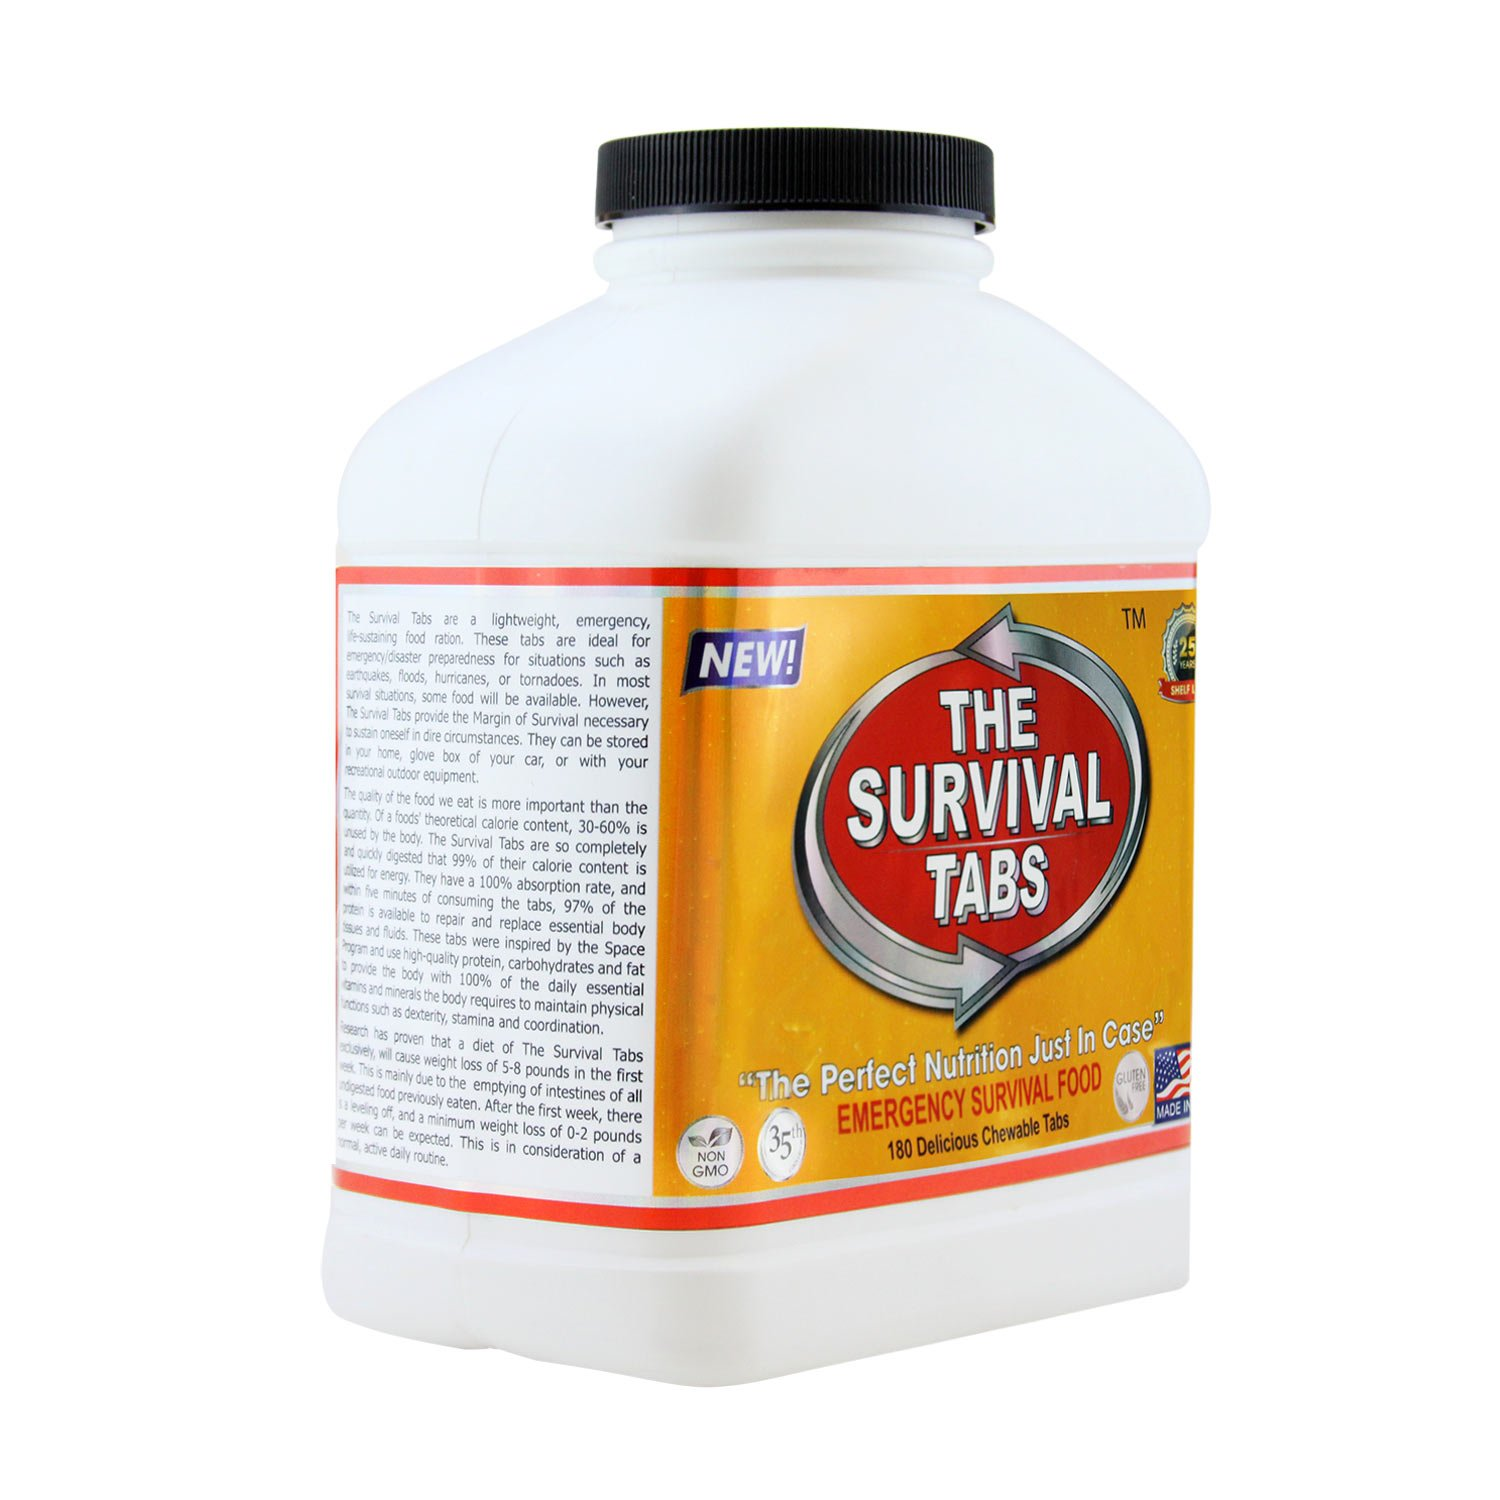 Survival Tabs 60-day Food Supply Emergency Food Ration 720 tabs Survival MREs for Disaster Preparedness for Earthquake Flood Tsunami Gluten Free and Non-GMO 25 Years Shelf Life - Strawberry Flavor by The Survival Tabs (Image #3)